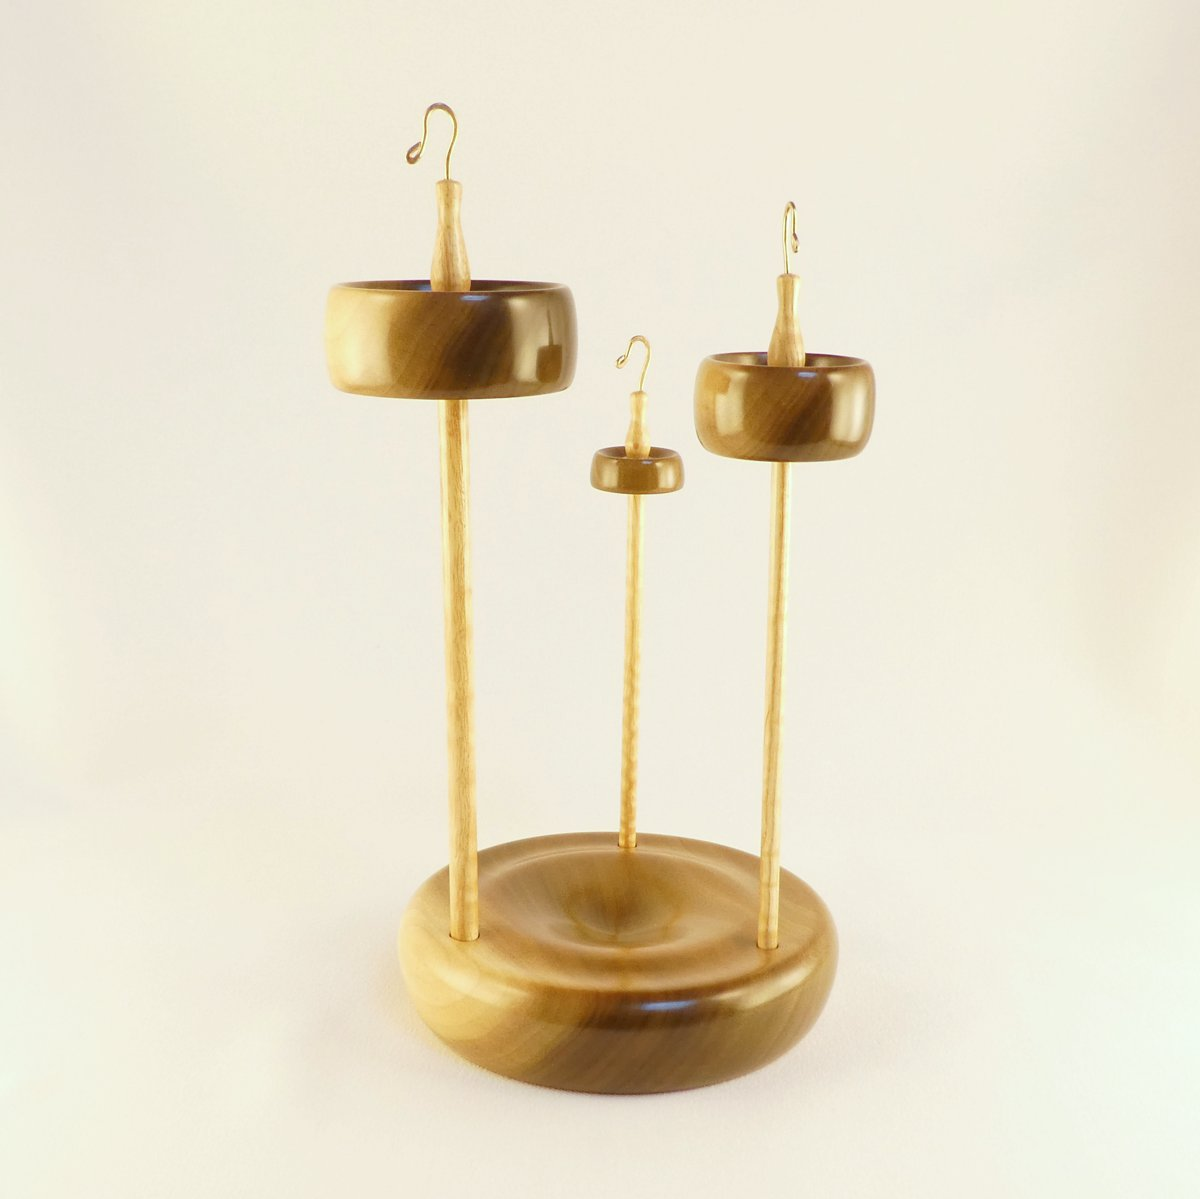 Set of three top whorl drop spindles with a matching holder, storage, display stand. Designed and handmade by Cynthia D. Haney with rim weighted notched whorls in Tulip Poplar with remarkable contrasting colored grain. Shafts are hand turned curly ash wood, hooks bronze.